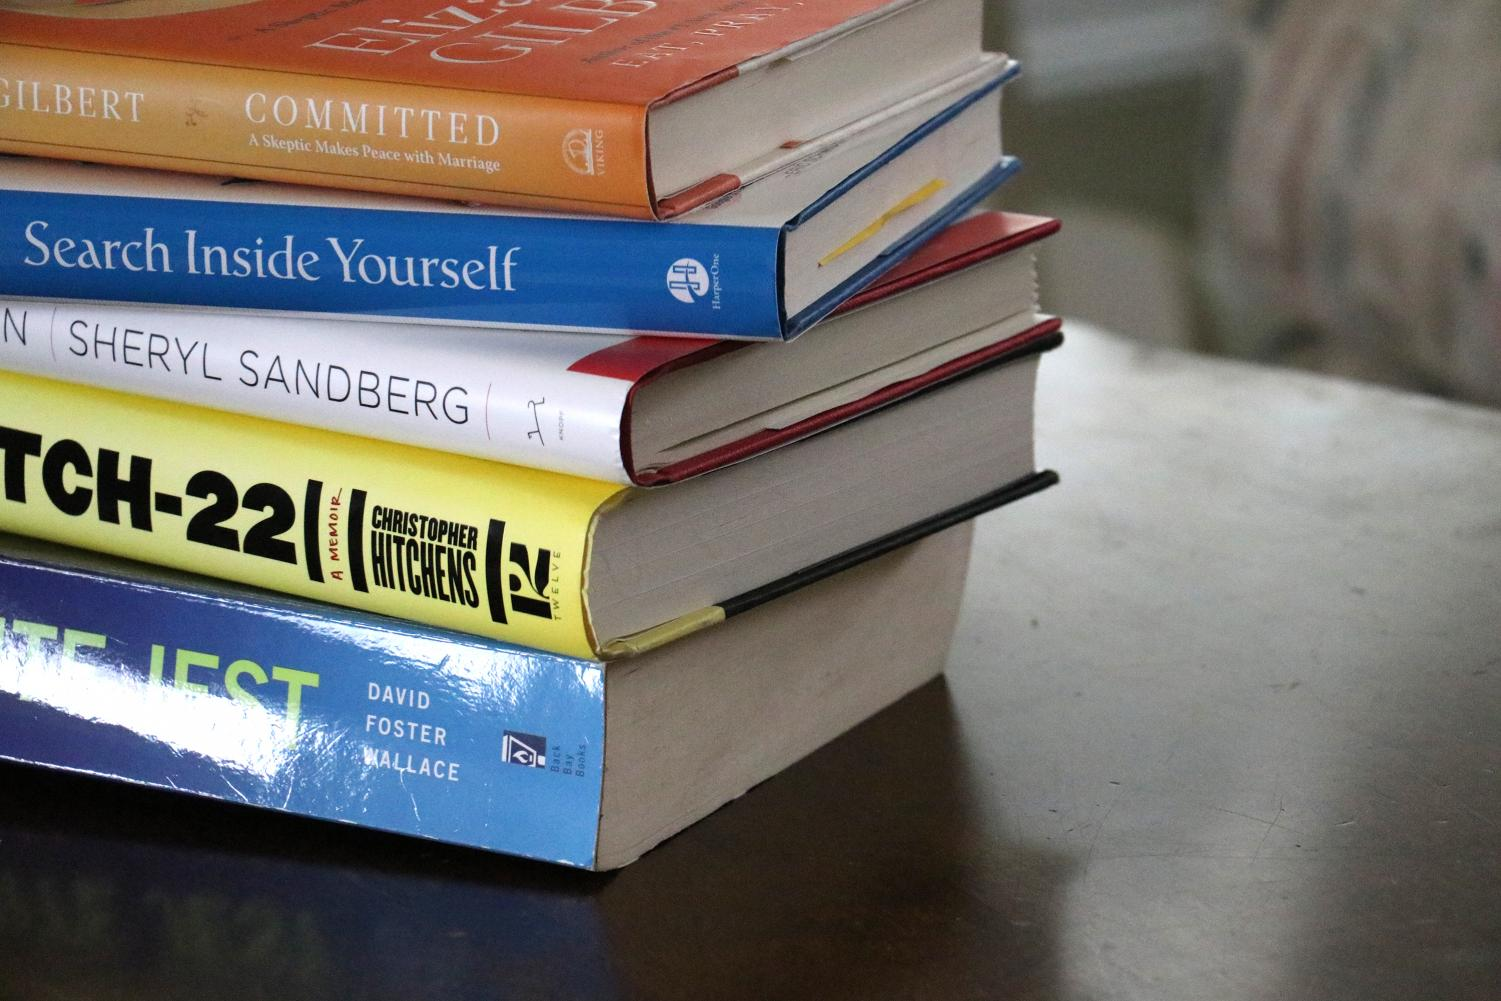 LITERATURE Developing a connection with we read is important for maintaining interest in literature. However, a rigid curriculum and lack diversity may be what are holding us back.